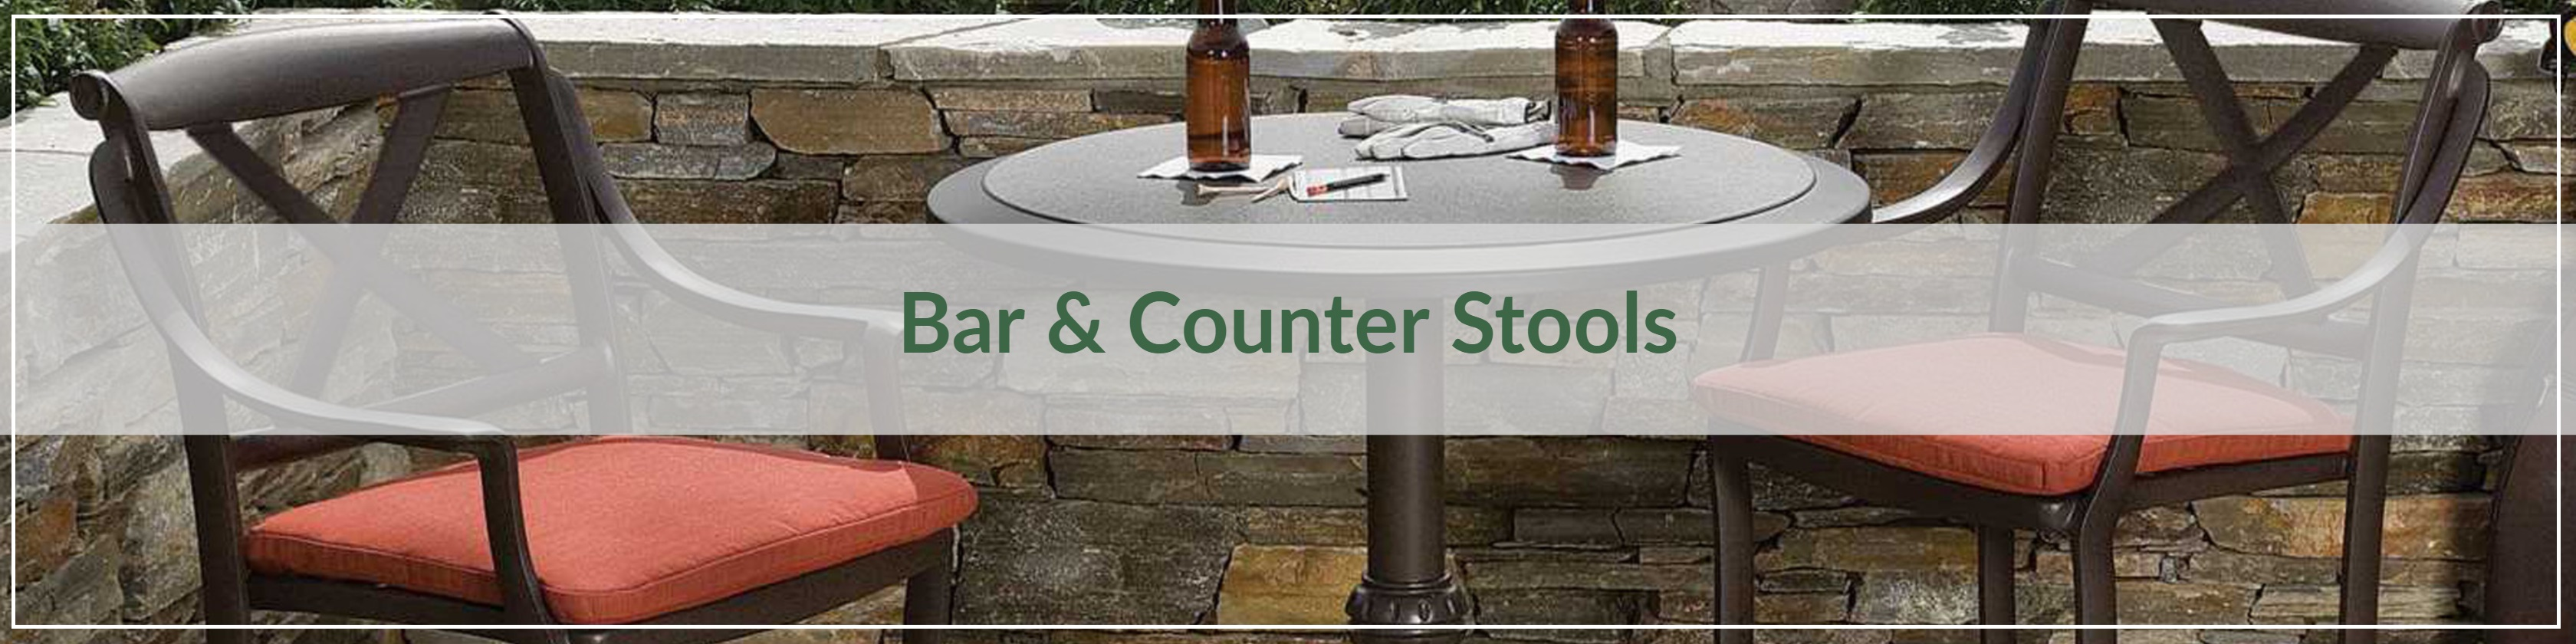 Outdoor Bar & Counter Stools